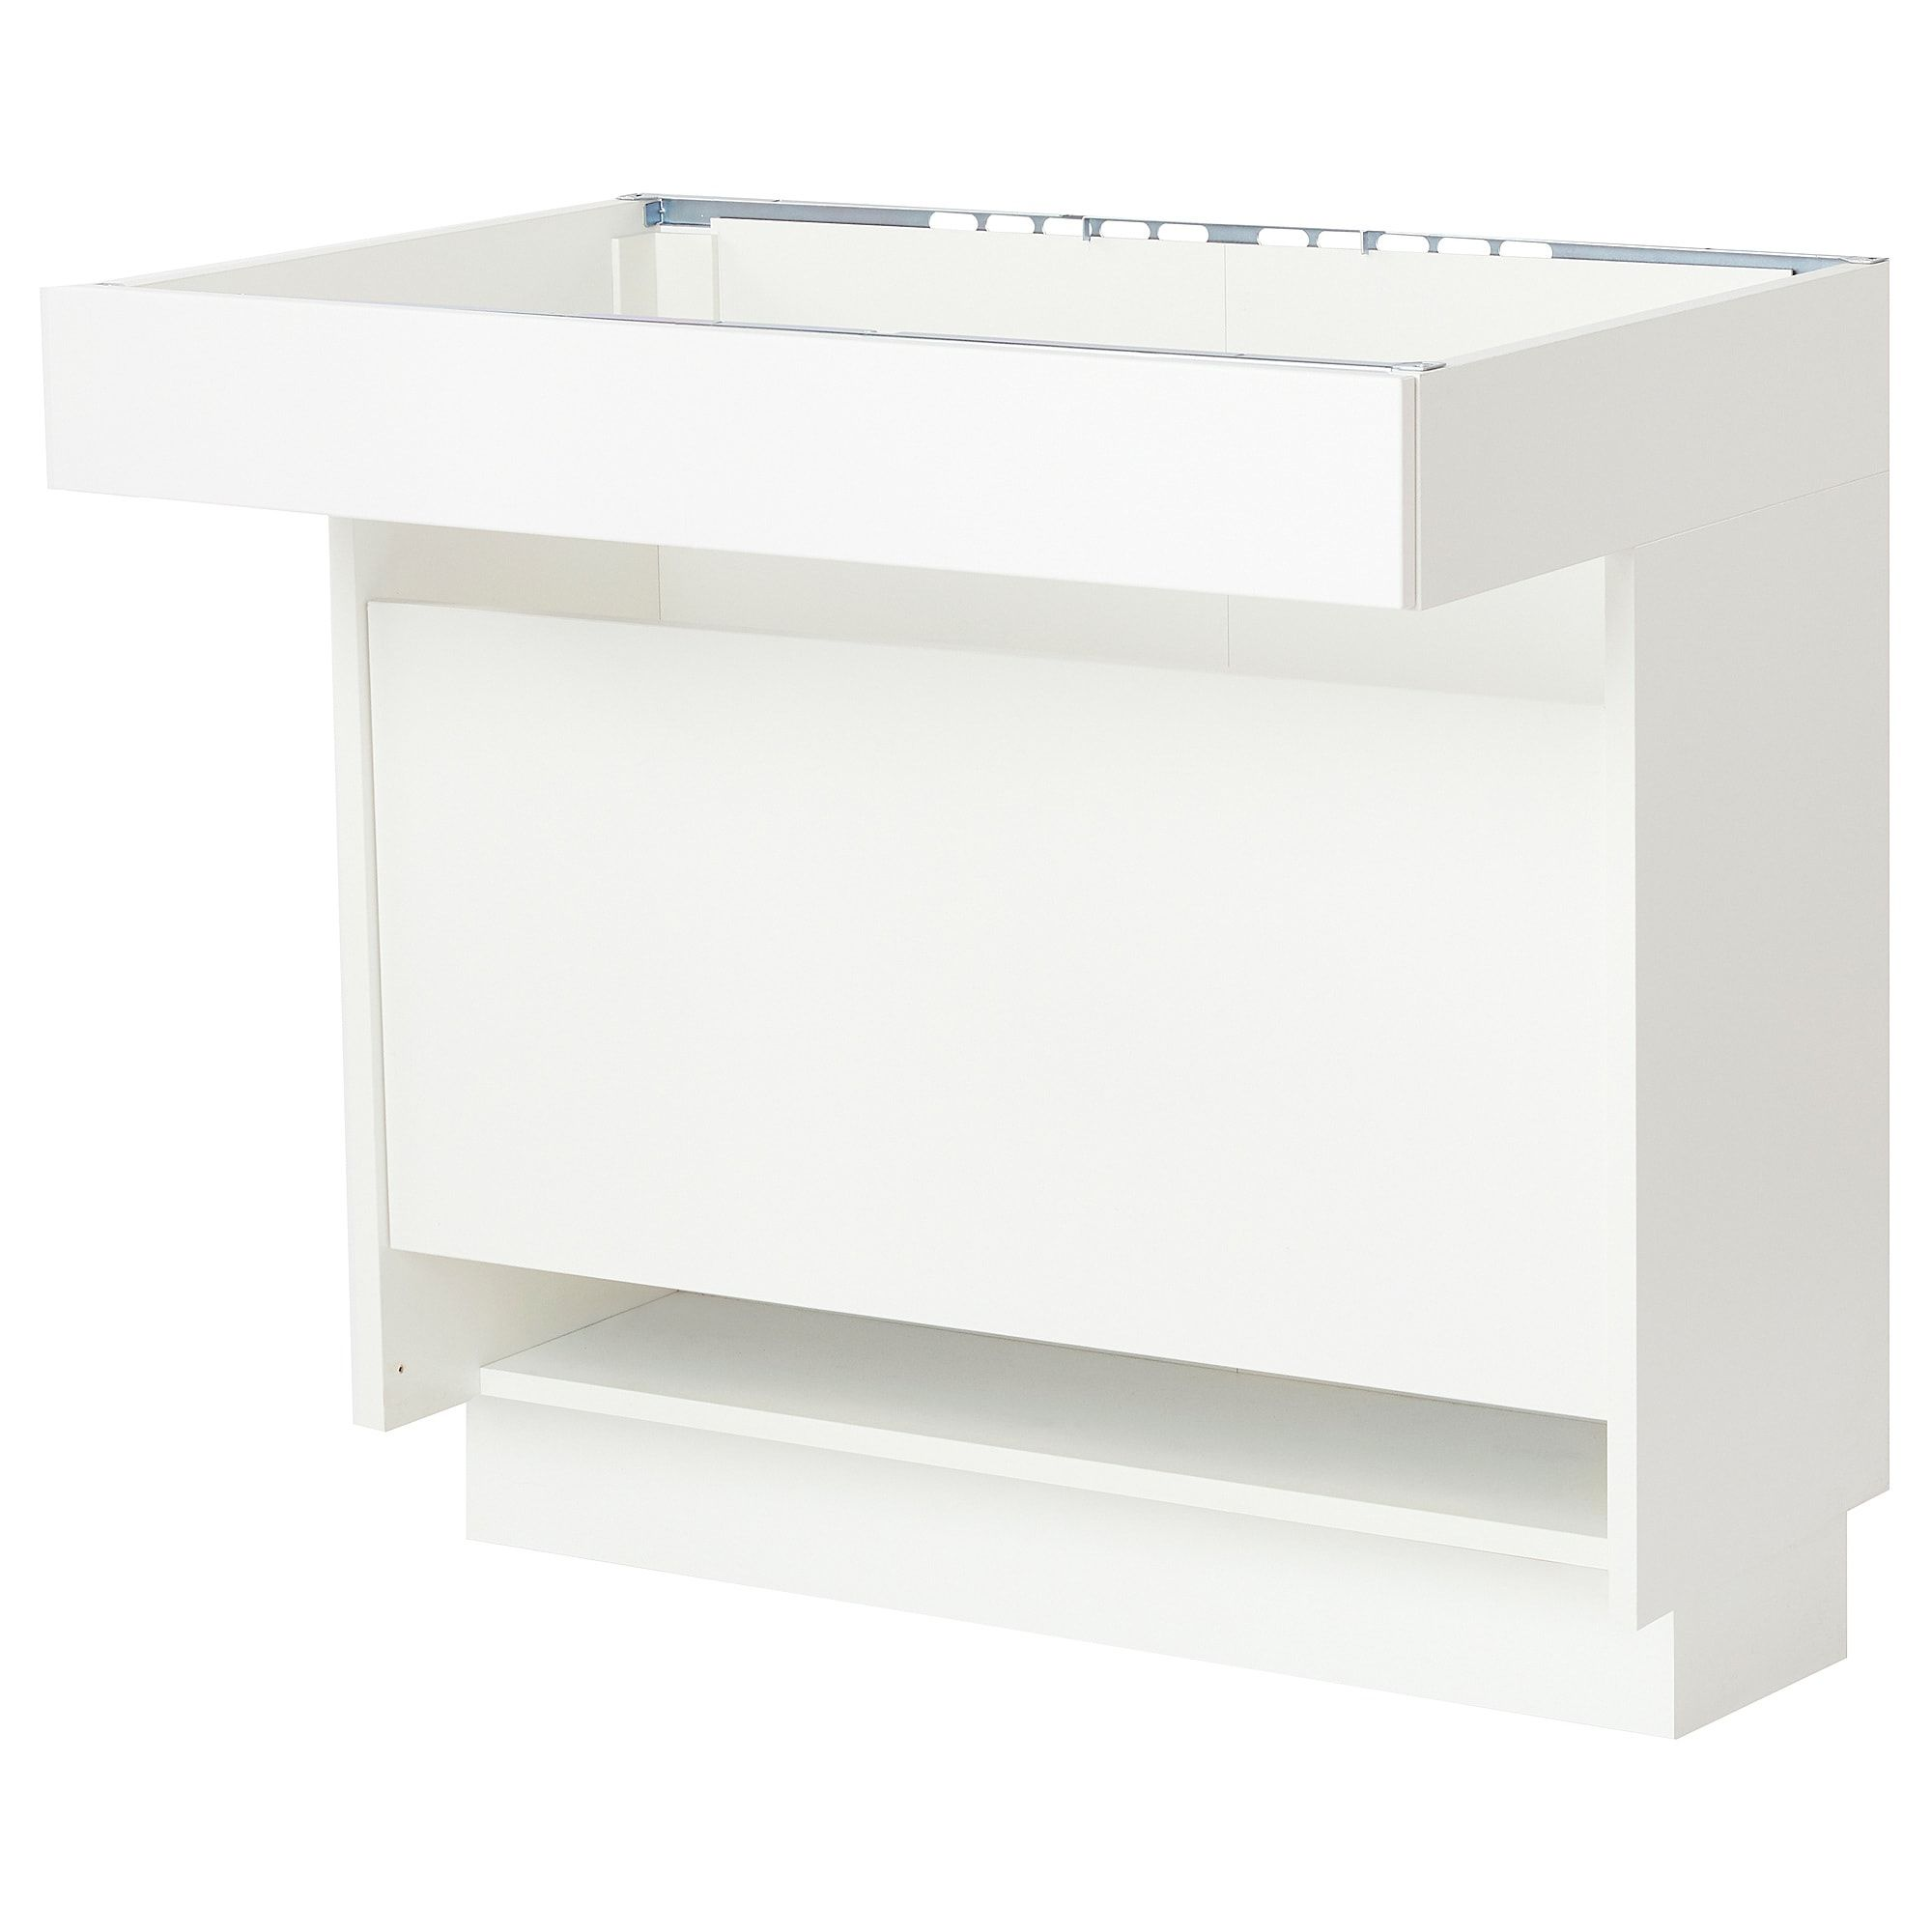 Wheelchairs White Base Cabinet Frame